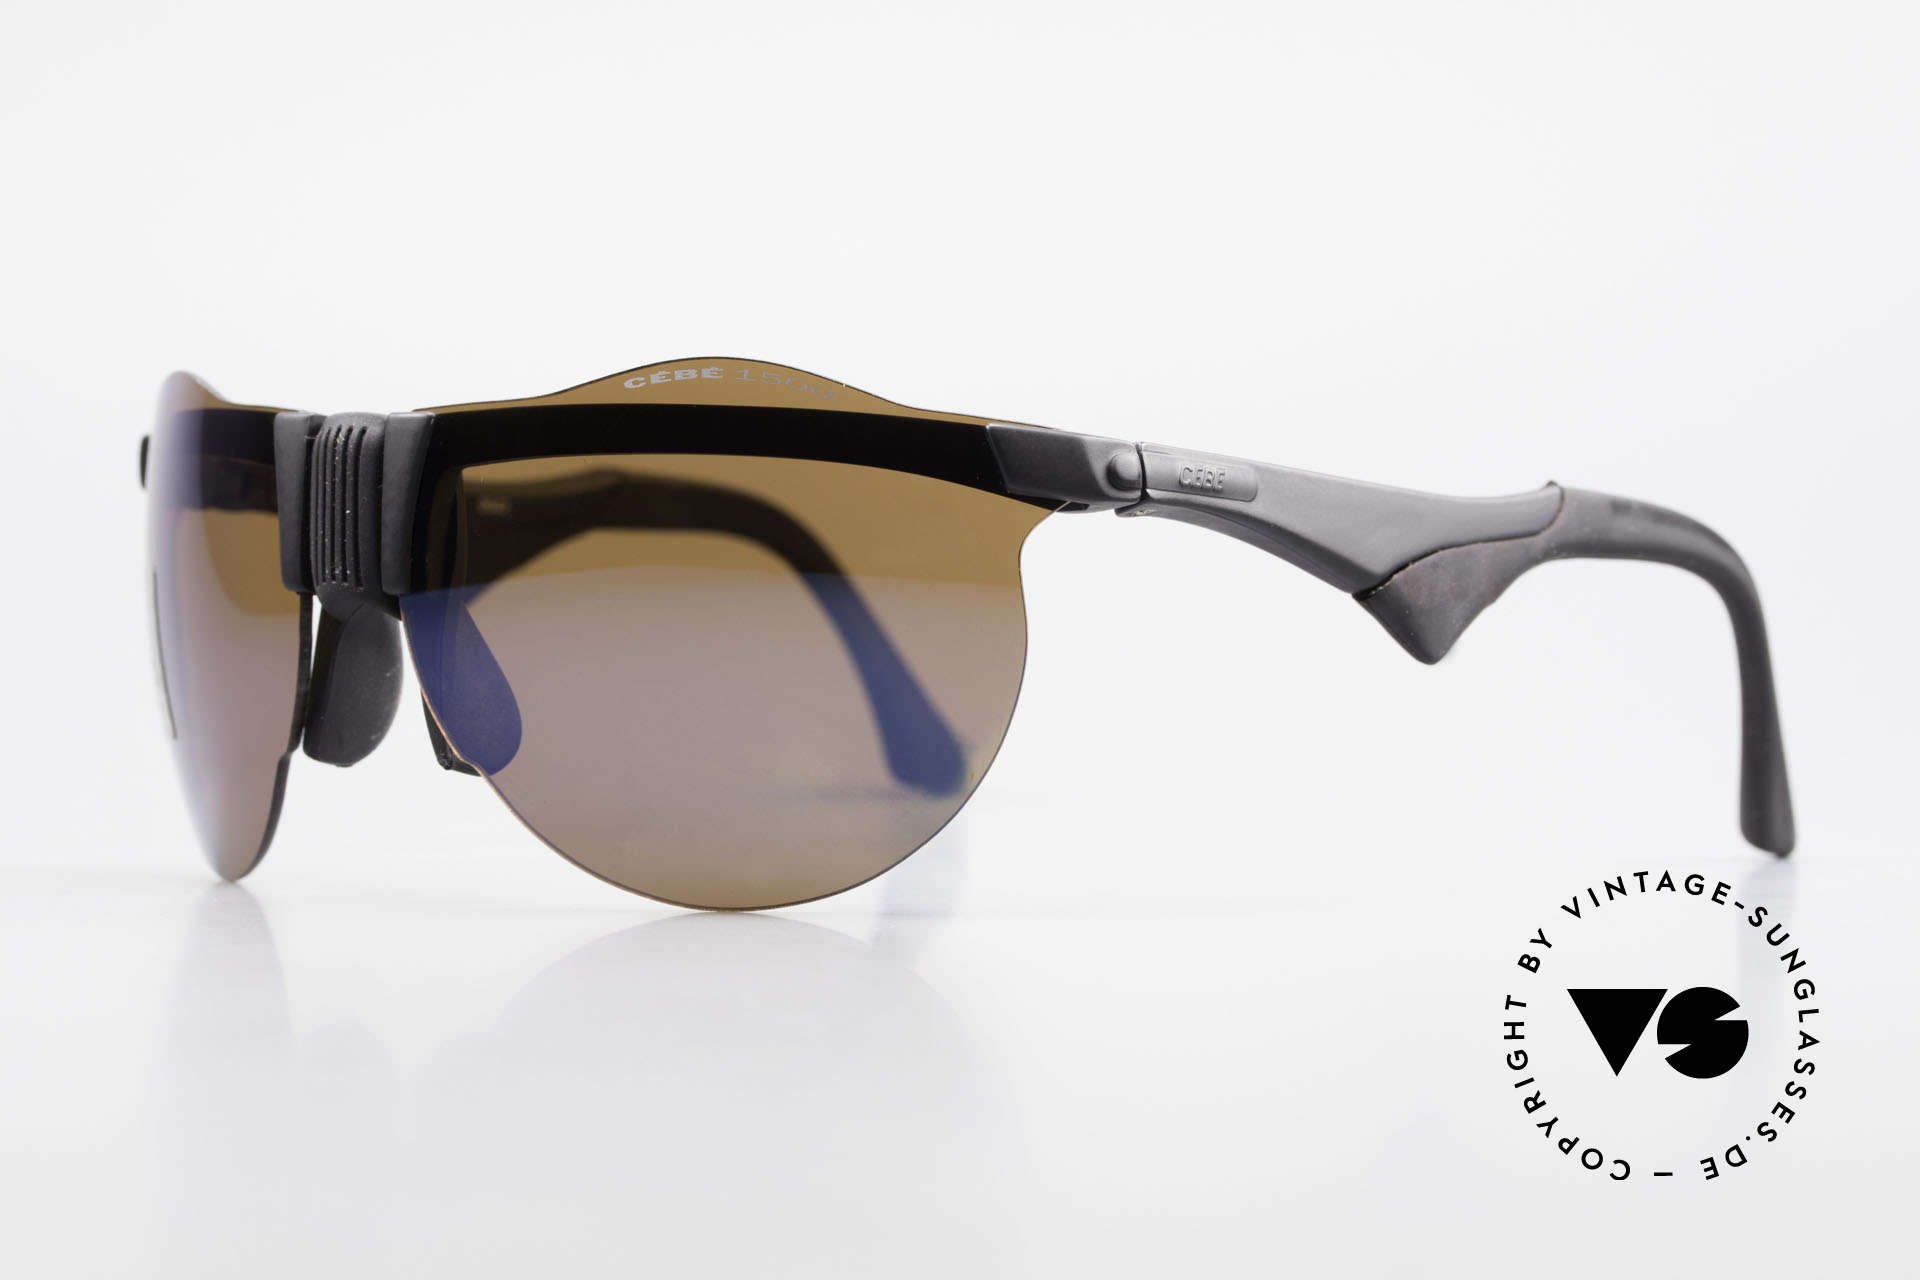 Cebe 1943 Rare Old Racing Sunglasses, ultra hard tested on the African tracks of PARIS-DAKAR, Made for Men and Women